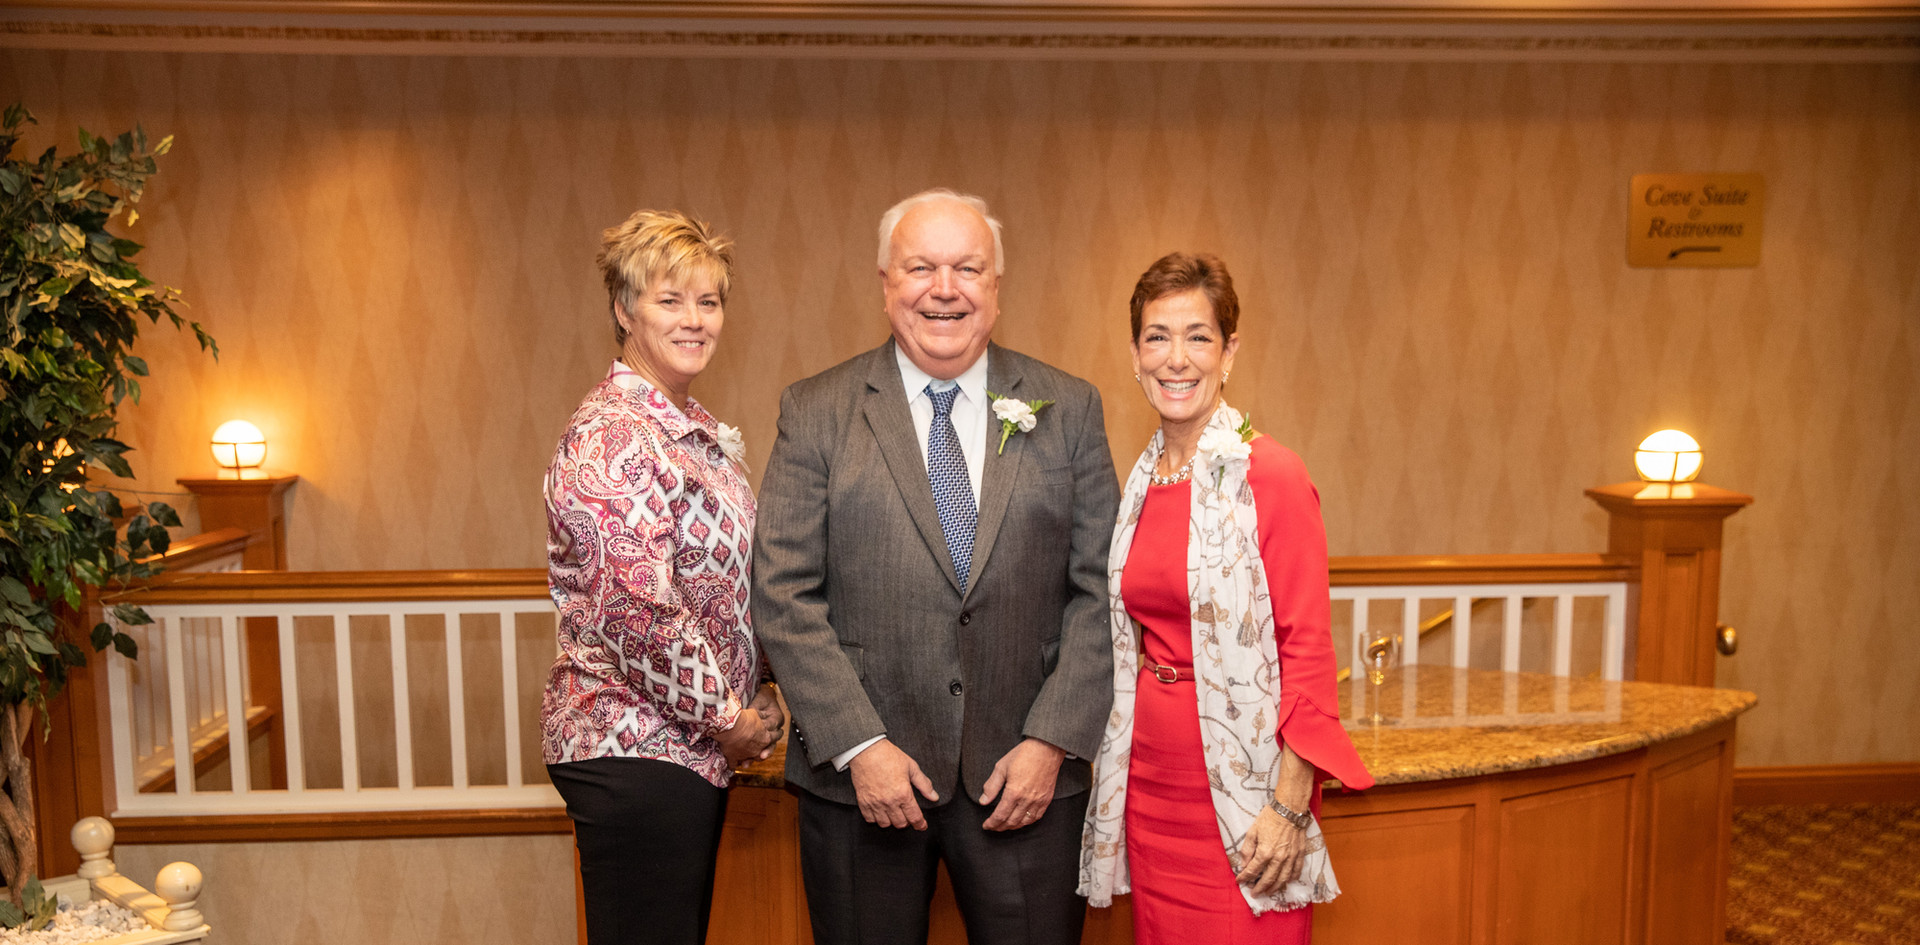 Honorees Missy Oman, Bob Kramer, and Maria Marino.  (photo by Josh Molaver)